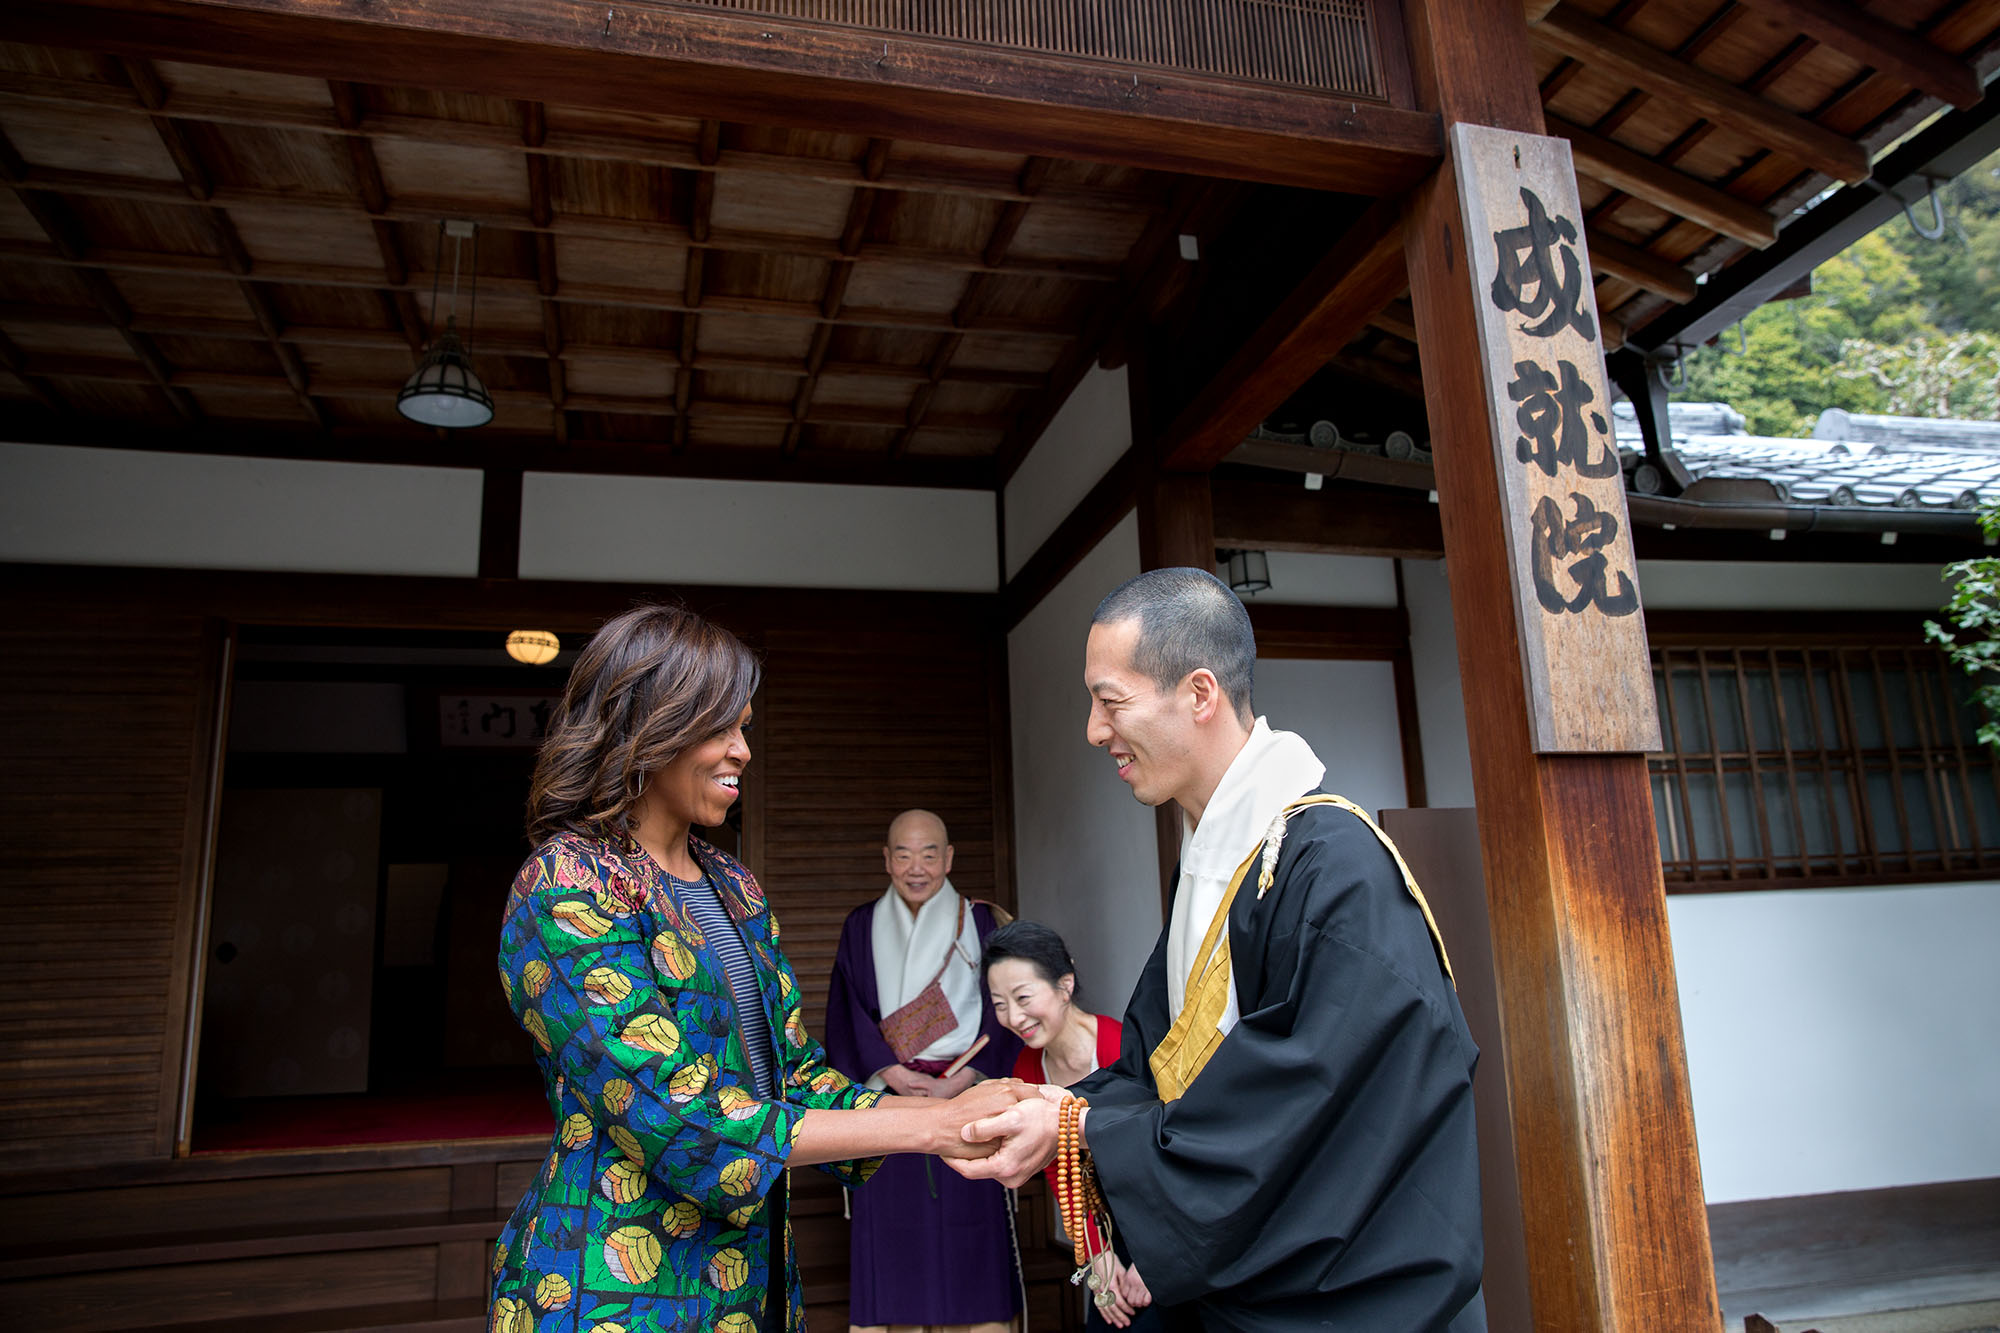 Eigen Onishi thanks the First Lady for her visit to Kiyomizu-dera Buddhist temple